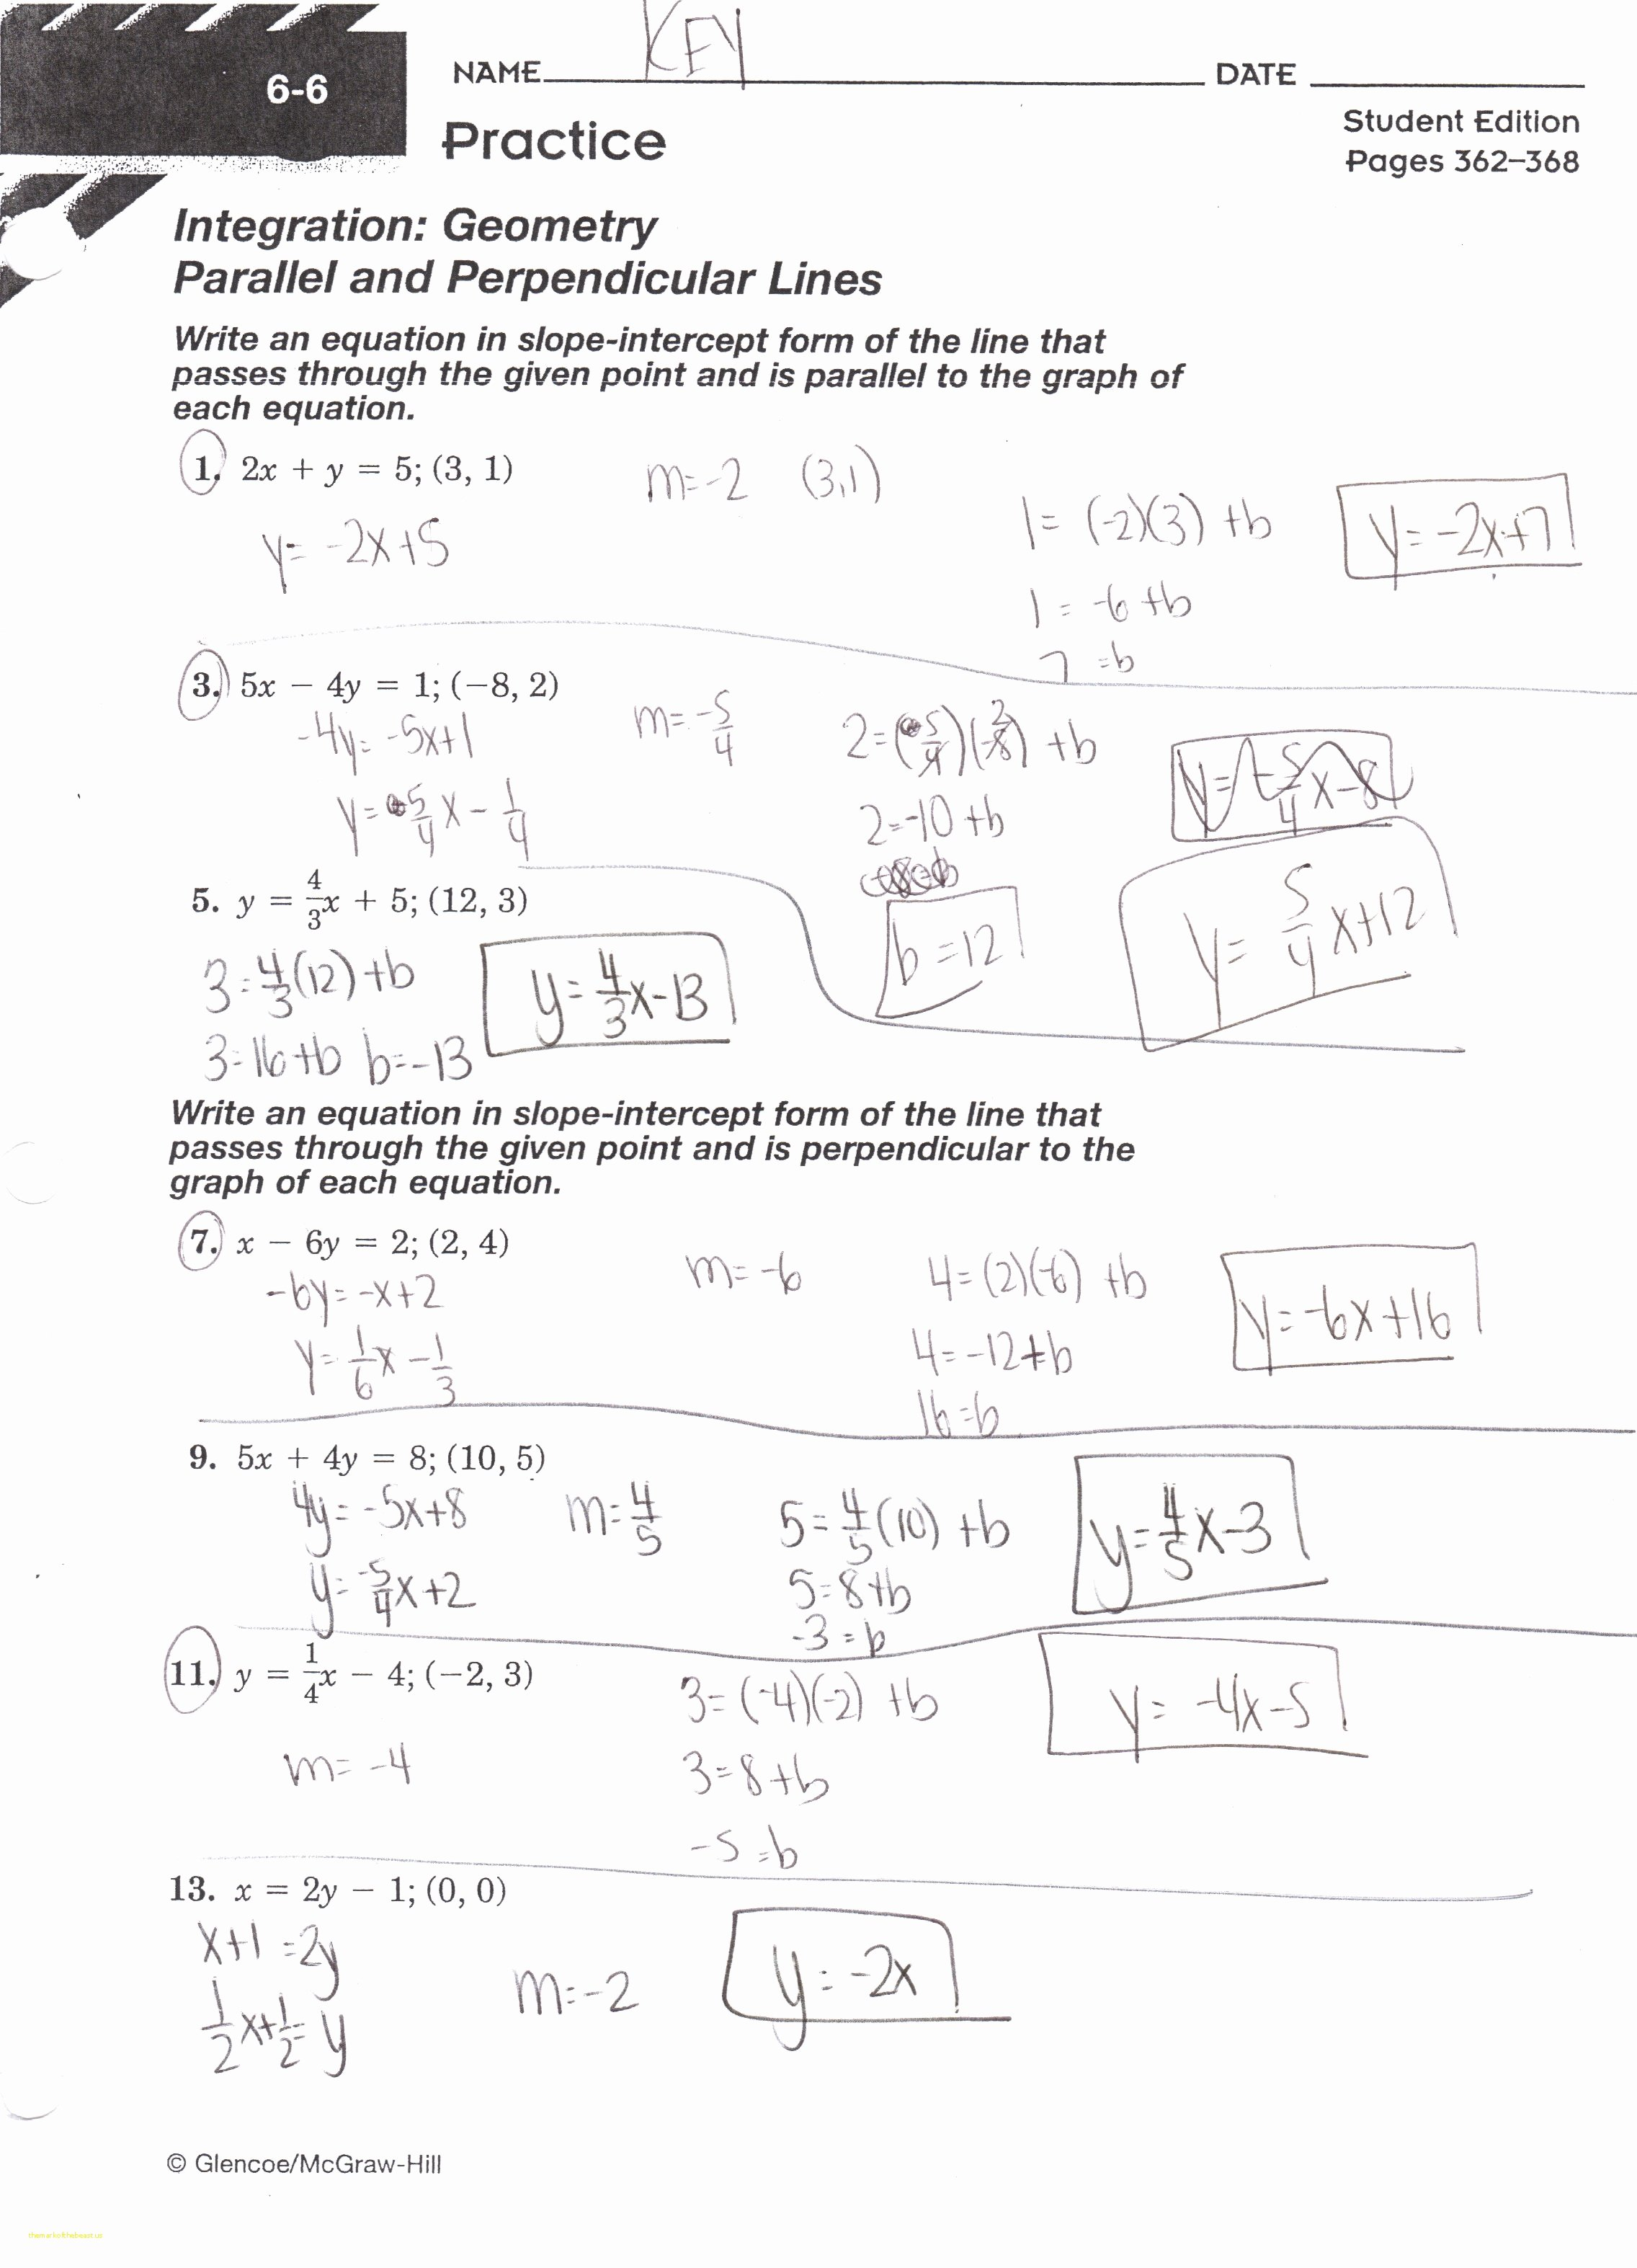 Equation Word Problems Worksheet Elegant Linear Equations Word Problems Worksheet with Answers